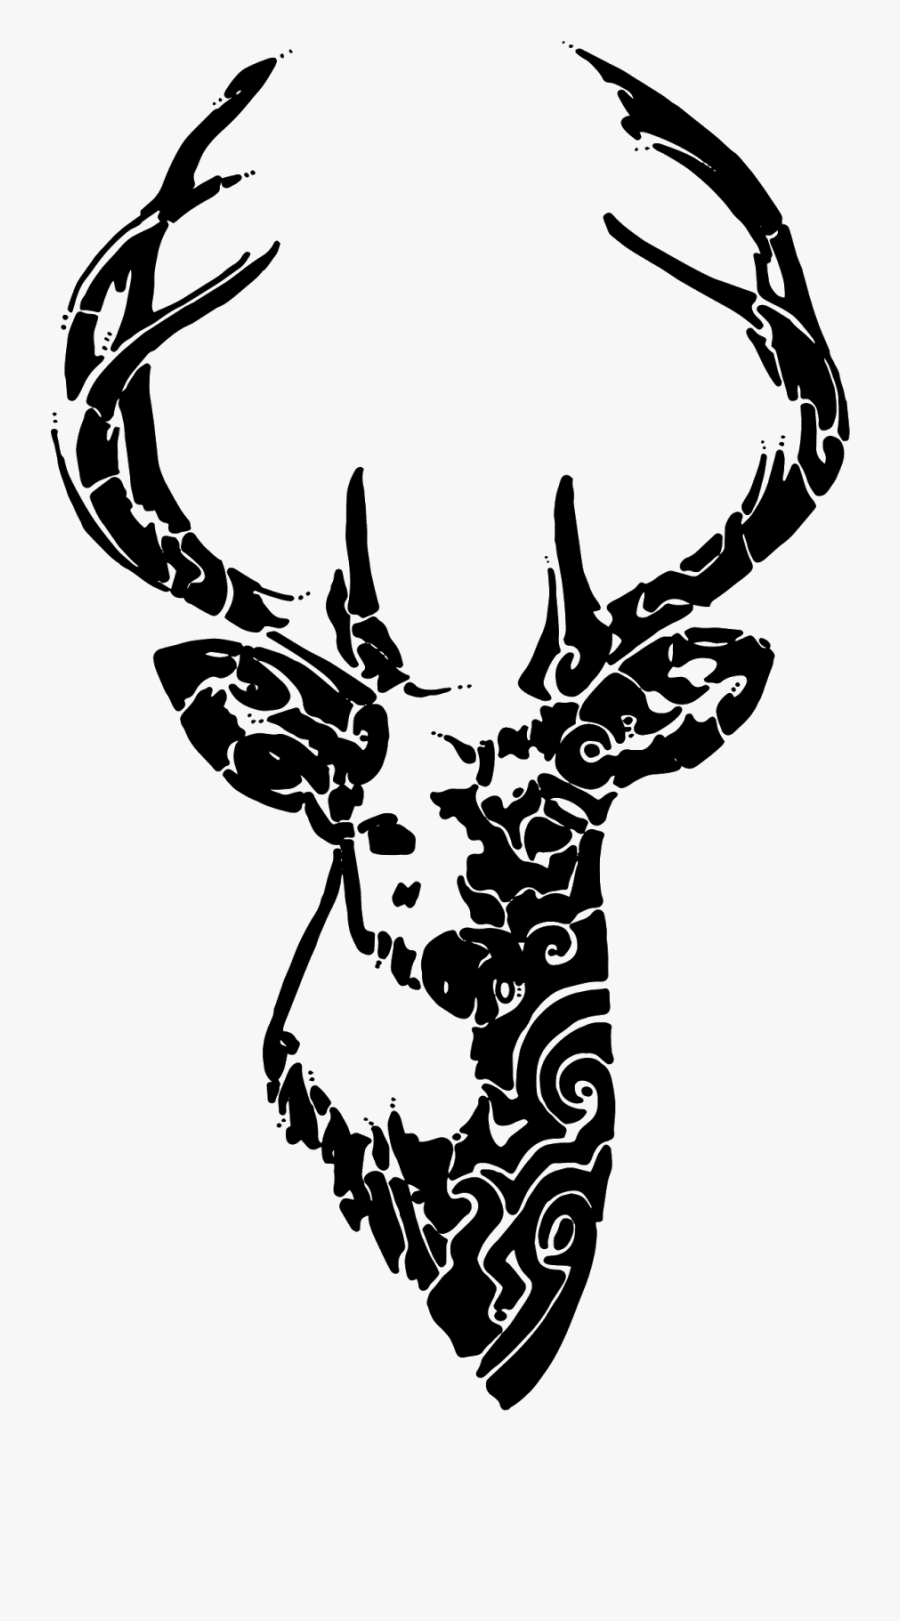 Deer Bacup Cricket Club Paper Sticker Decal - Deer Drawing On Cake, Transparent Clipart